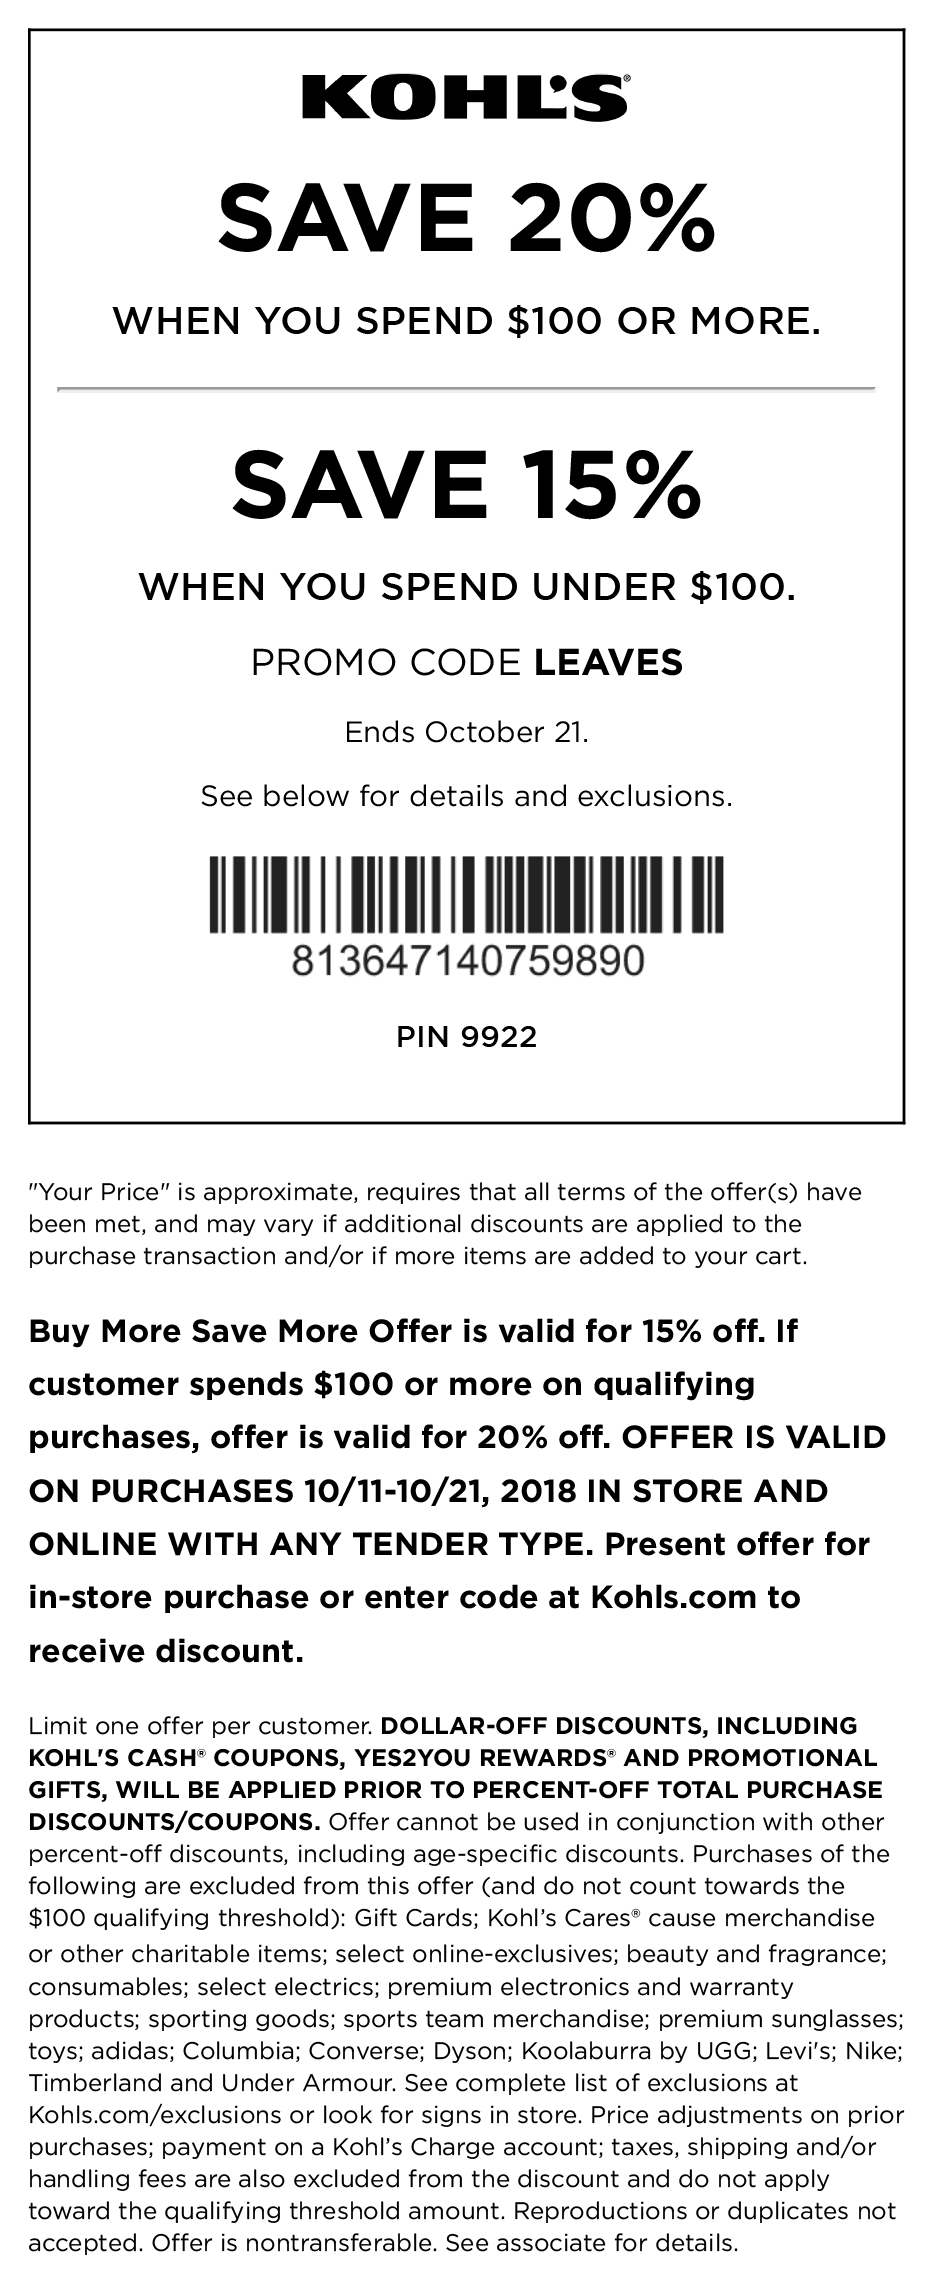 Kohls.com Promo Coupon 15-20% off at Kohls, or online via promo code LEAVES